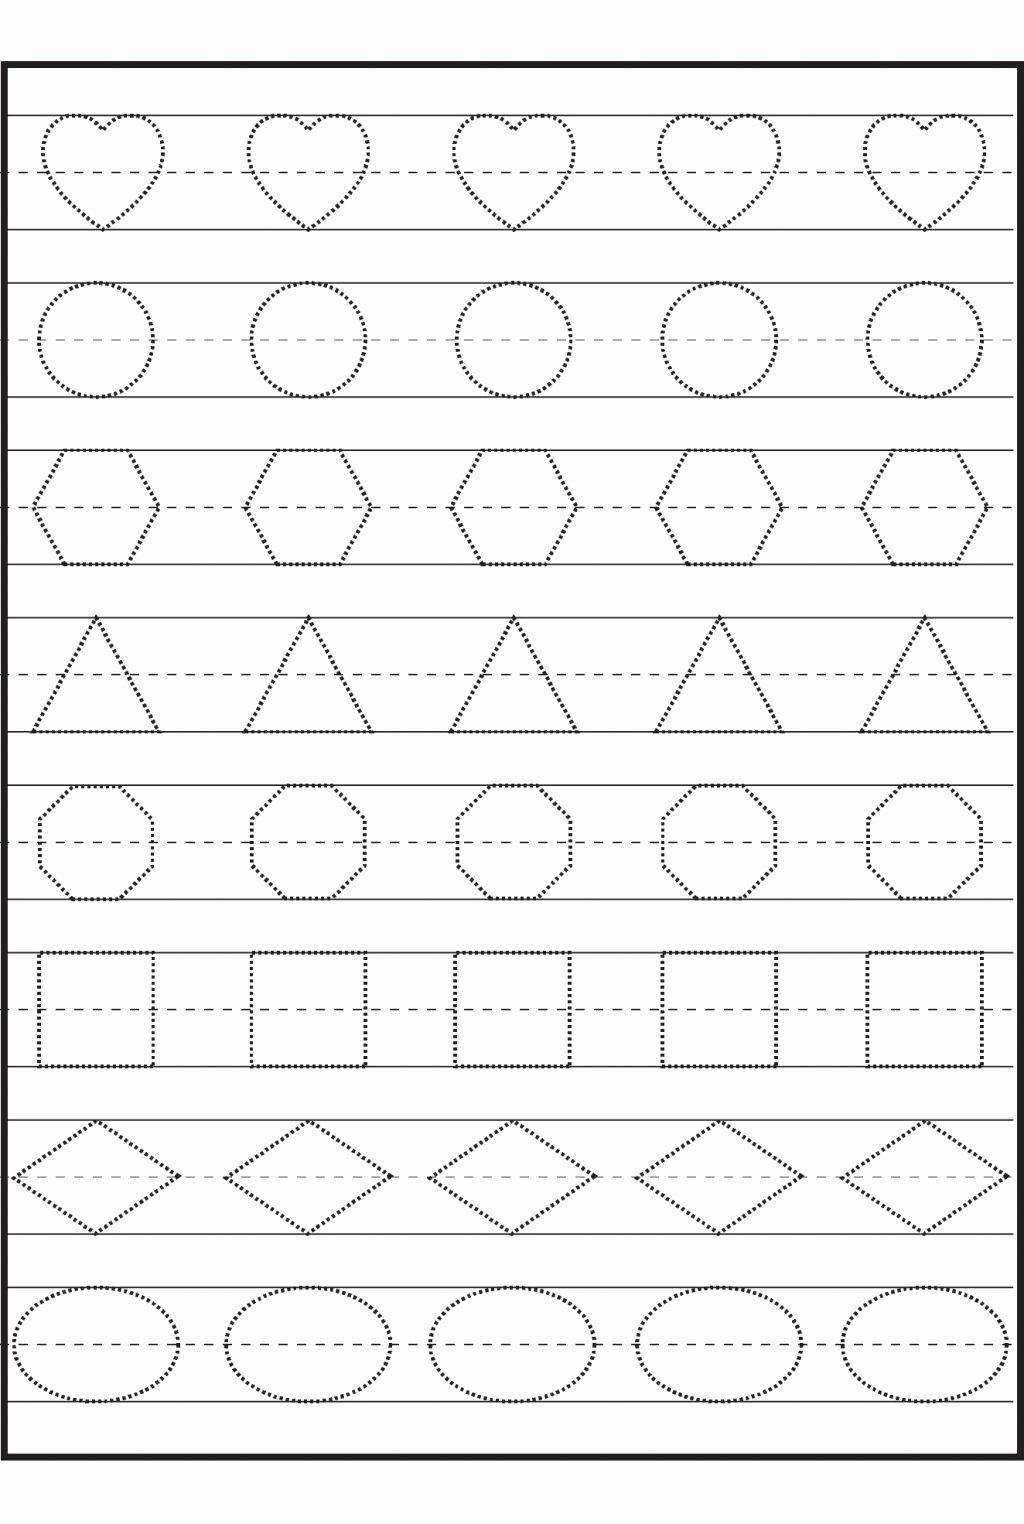 Tracing Worksheets for Preschoolers Unique Worksheet Preschool Worksheets Color for Preschoolers Free